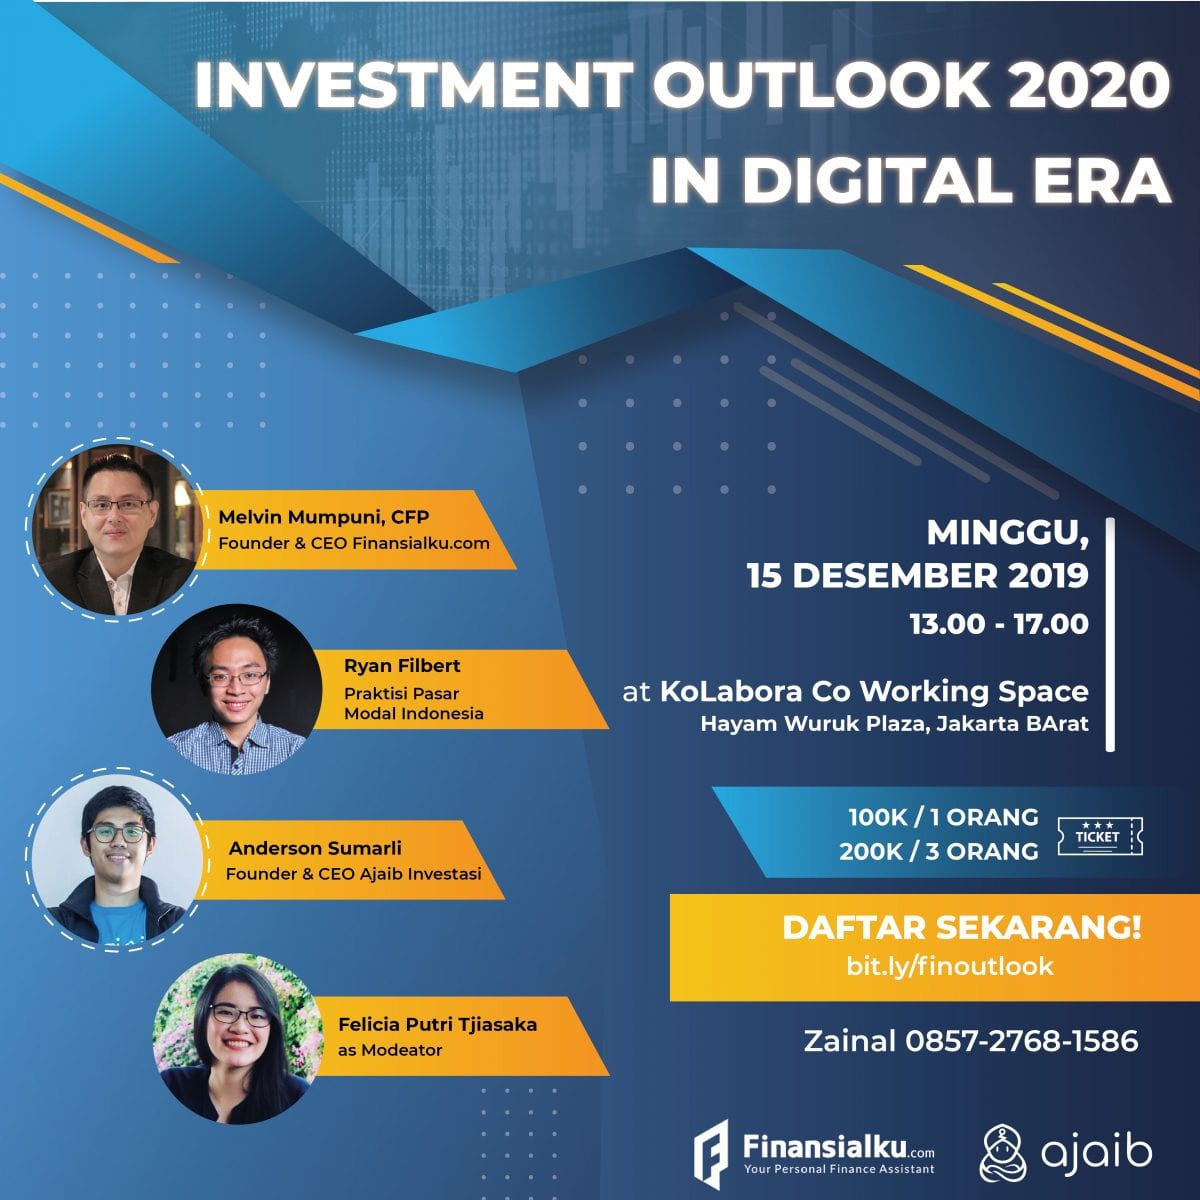 Investment Outlook 2020 In Digital Era